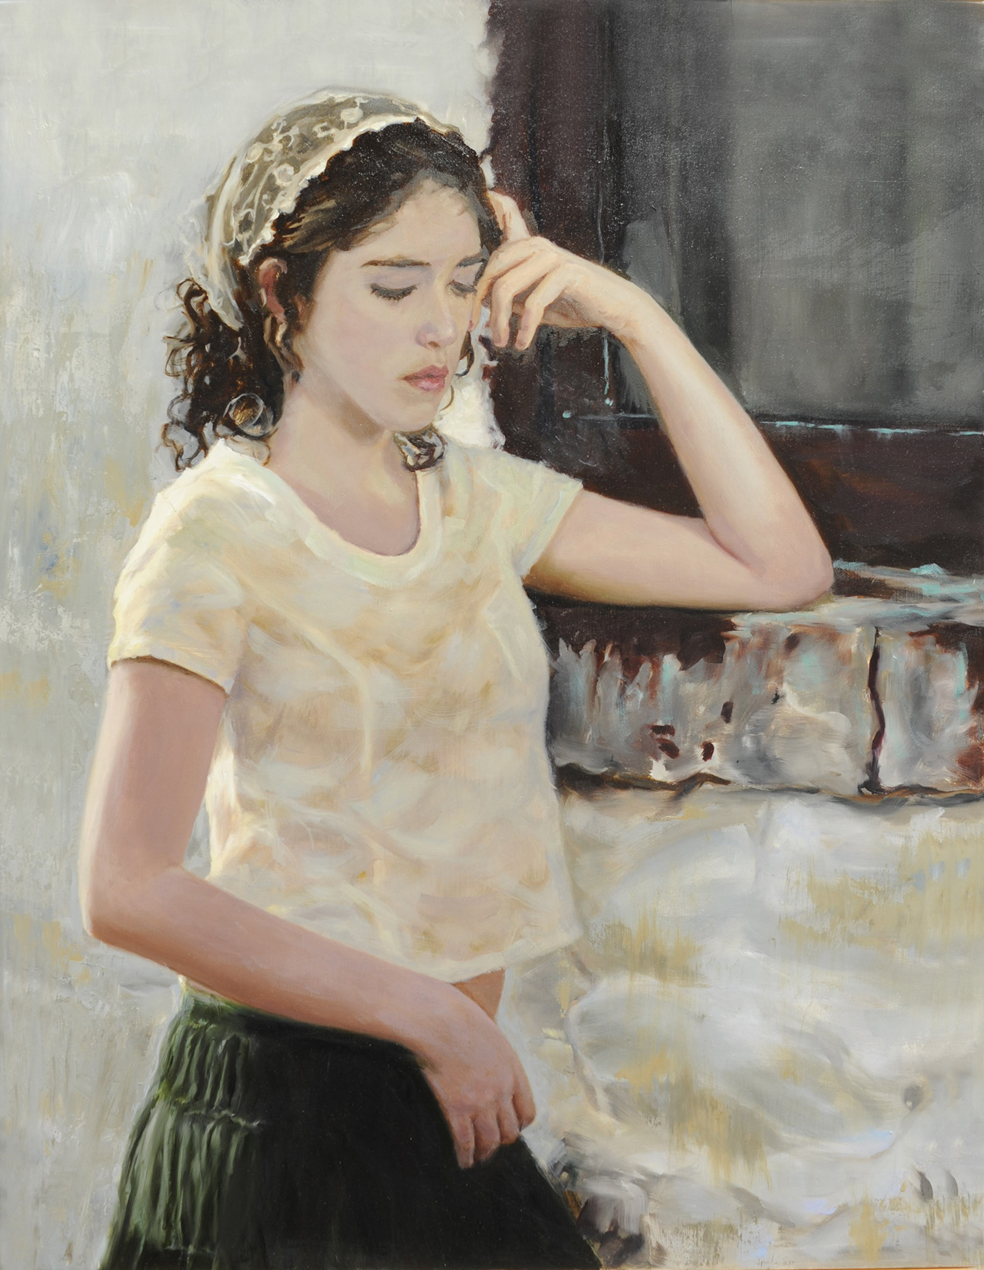 Commission portrait painter, oil paintings by Mark E. Lovett, fine artist, serving Maryland, Virginia and DC.